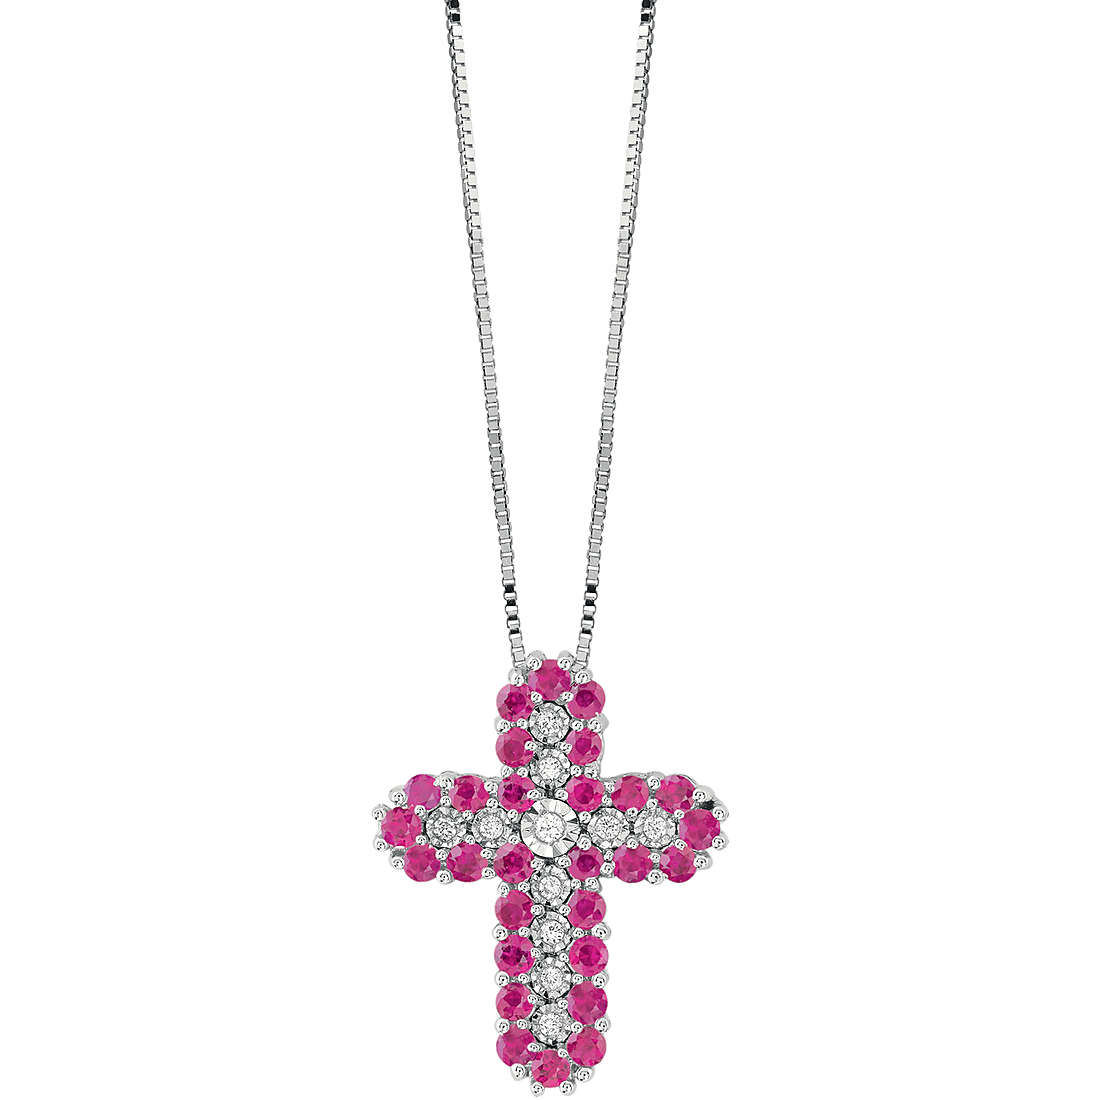 Bliss necklace cross white gold and diamonds and rubies 20086580